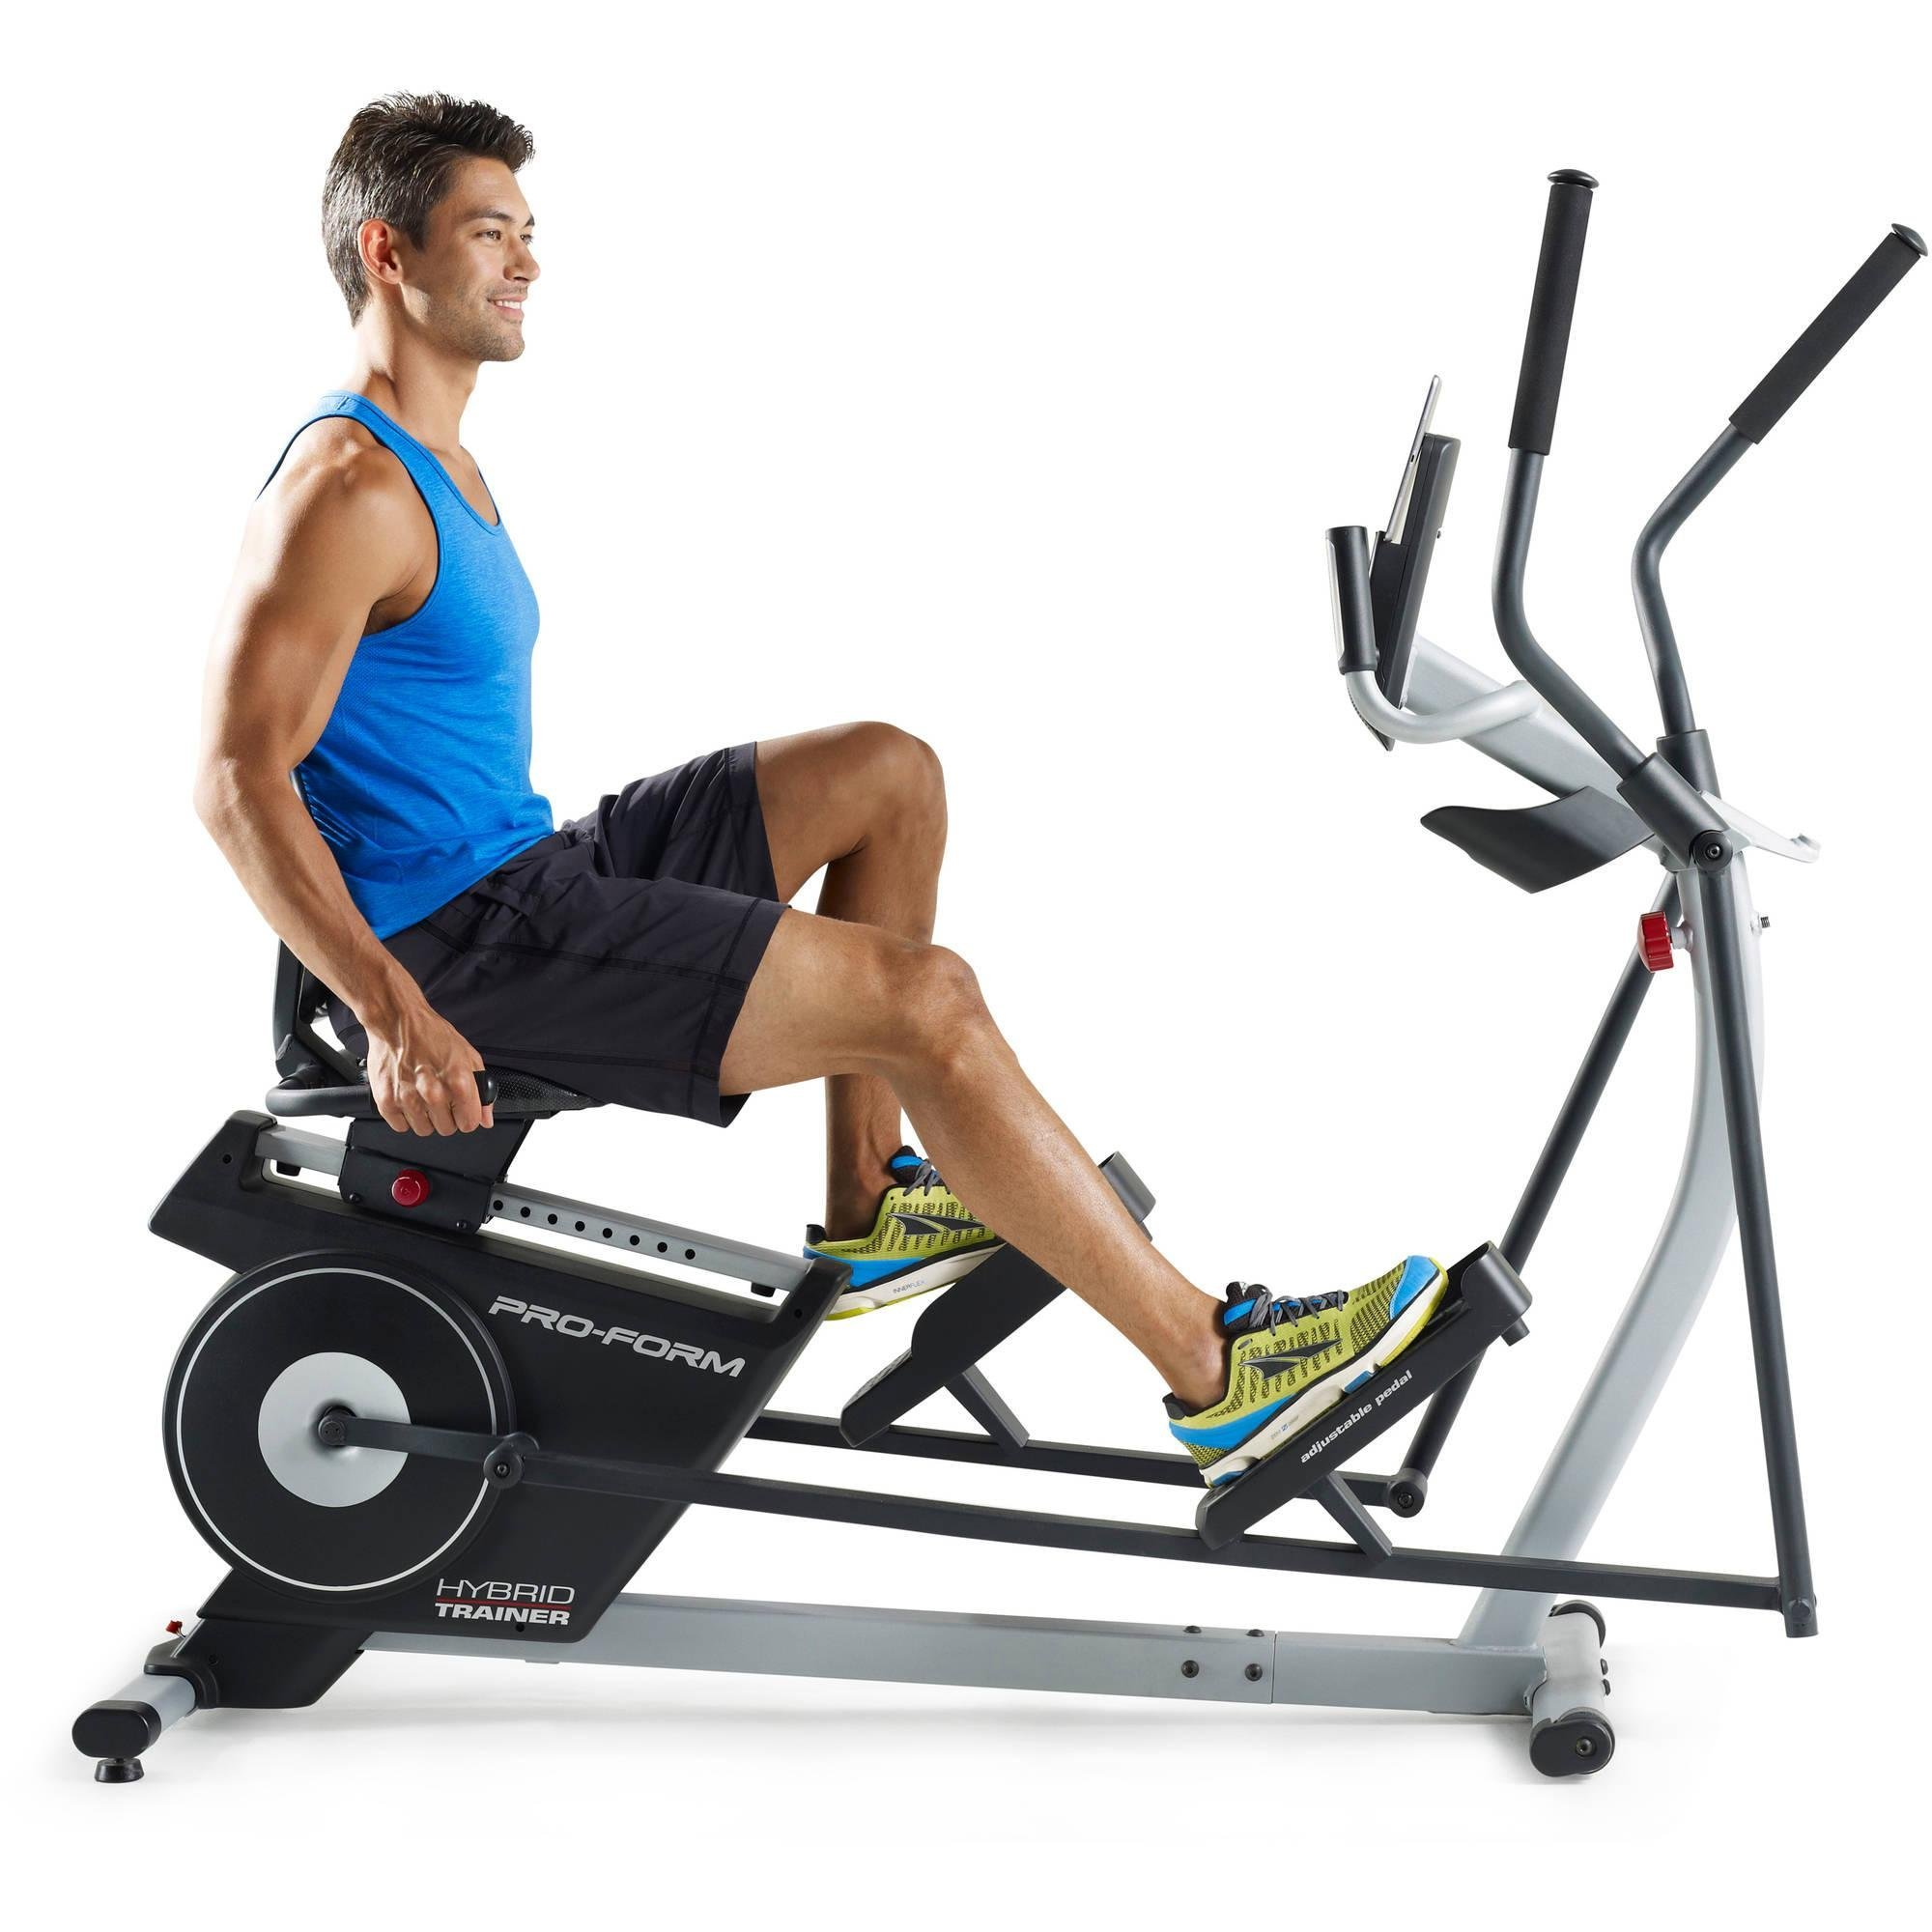 2-in-1 Double Elliptical and Recumbent Bike, Black by ProForm (Image #3)